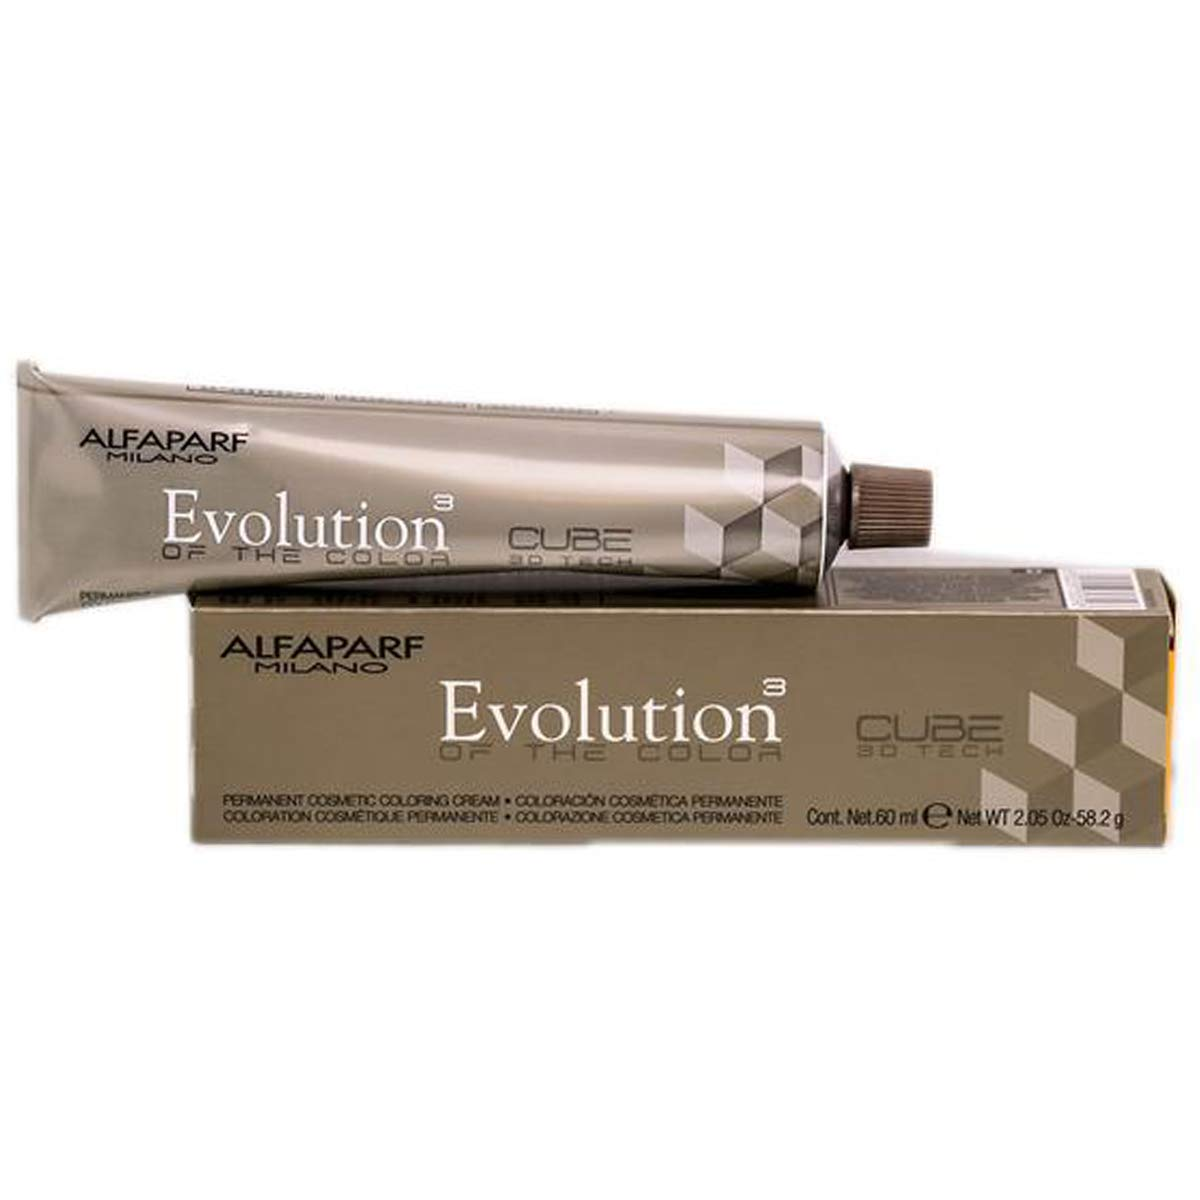 Alfaparf Milano Evolution of the Color Permanent Hair Color, 2 oz (#7 Medium Natural Blonde)